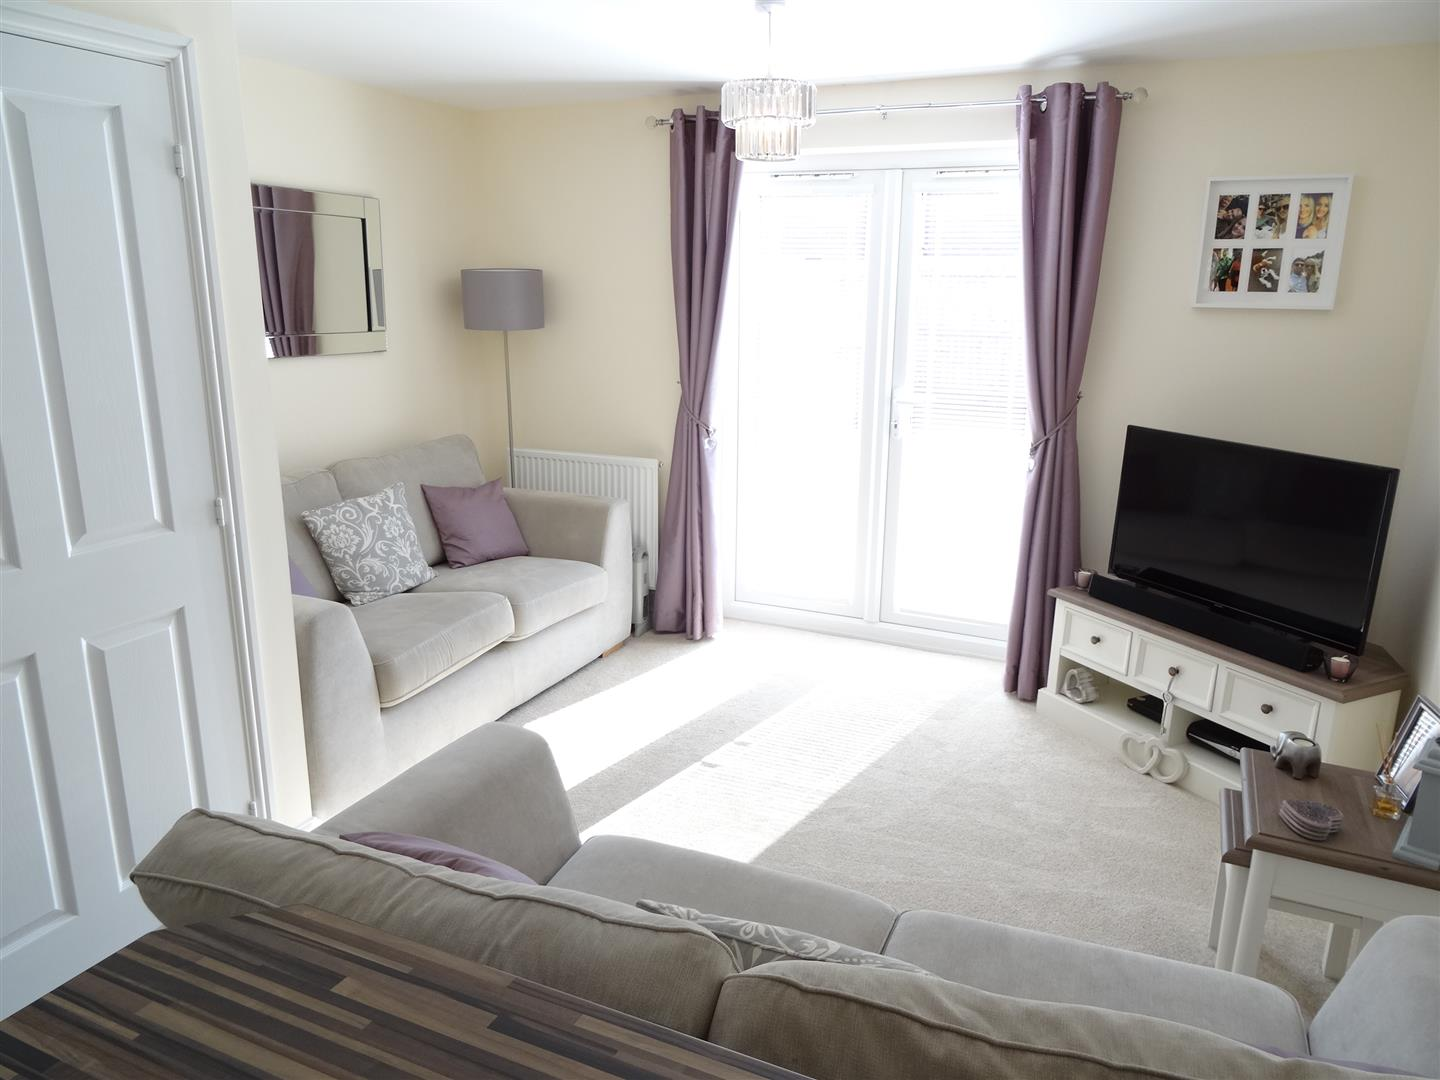 2 Bedrooms House - Semi-Detached For Sale 8 Raven Crag Close Carlisle